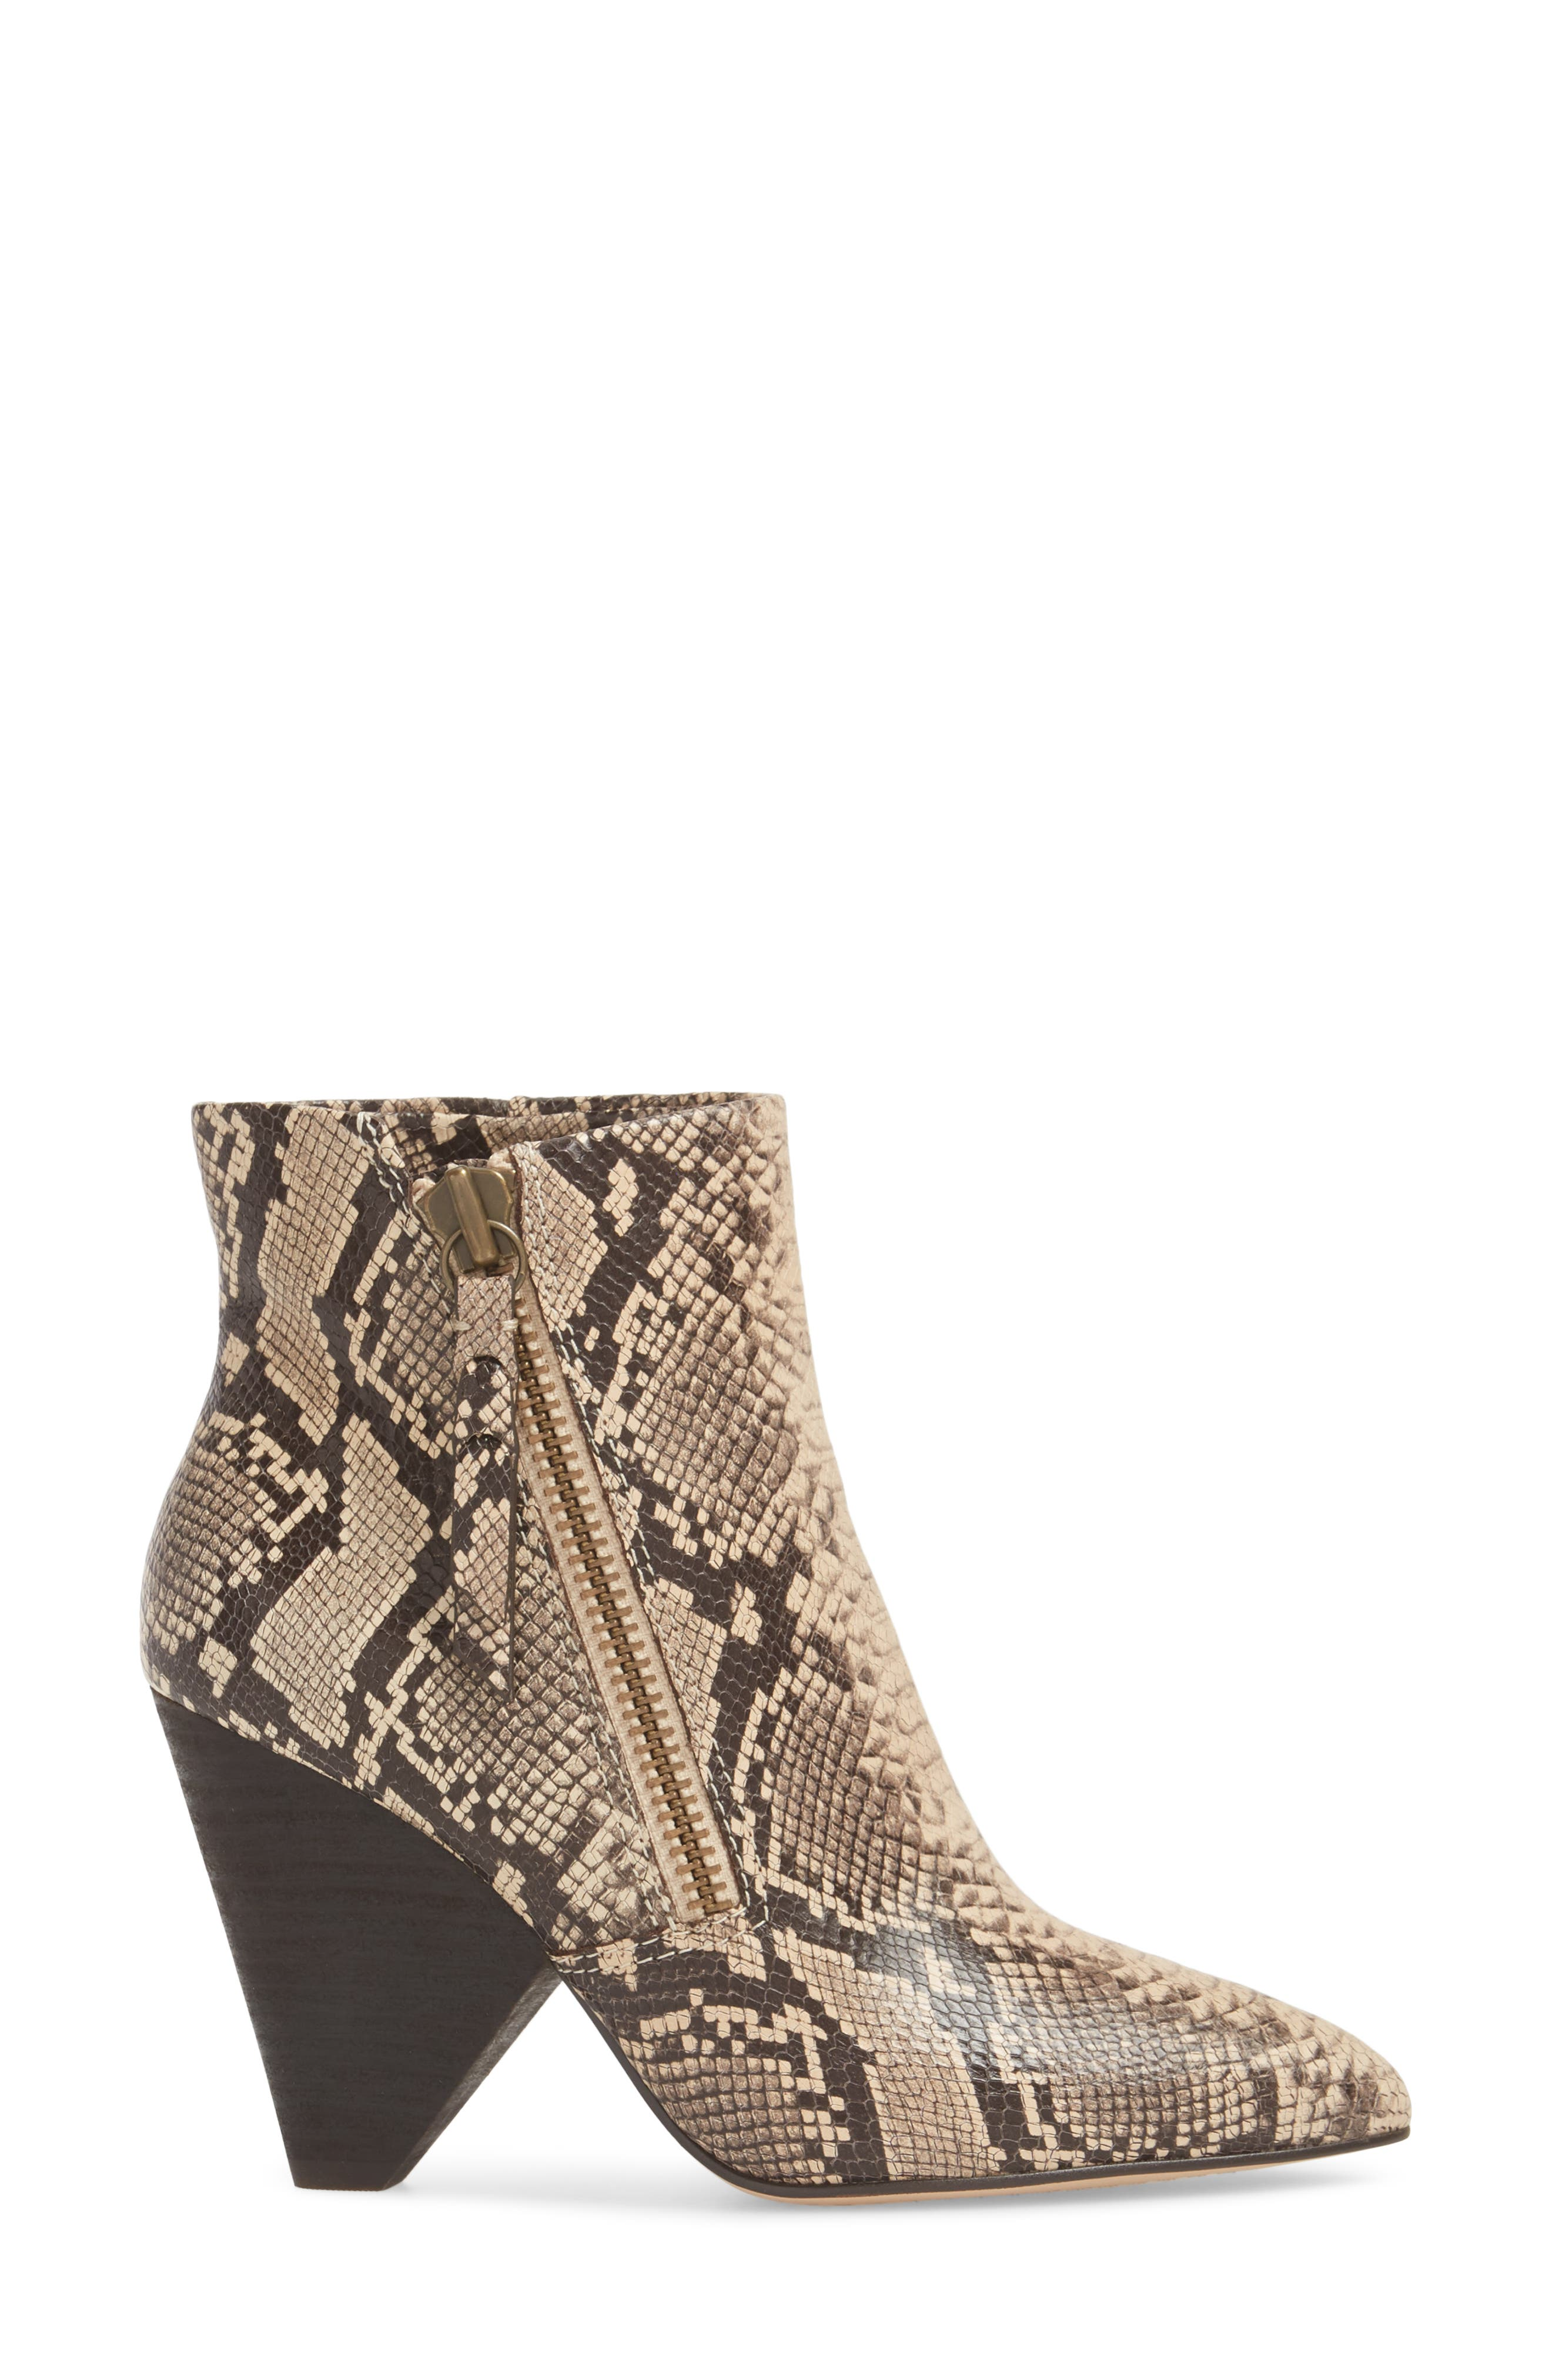 Neva II Bootie,                             Alternate thumbnail 5, color,                             Natural Embossed Snake Leather